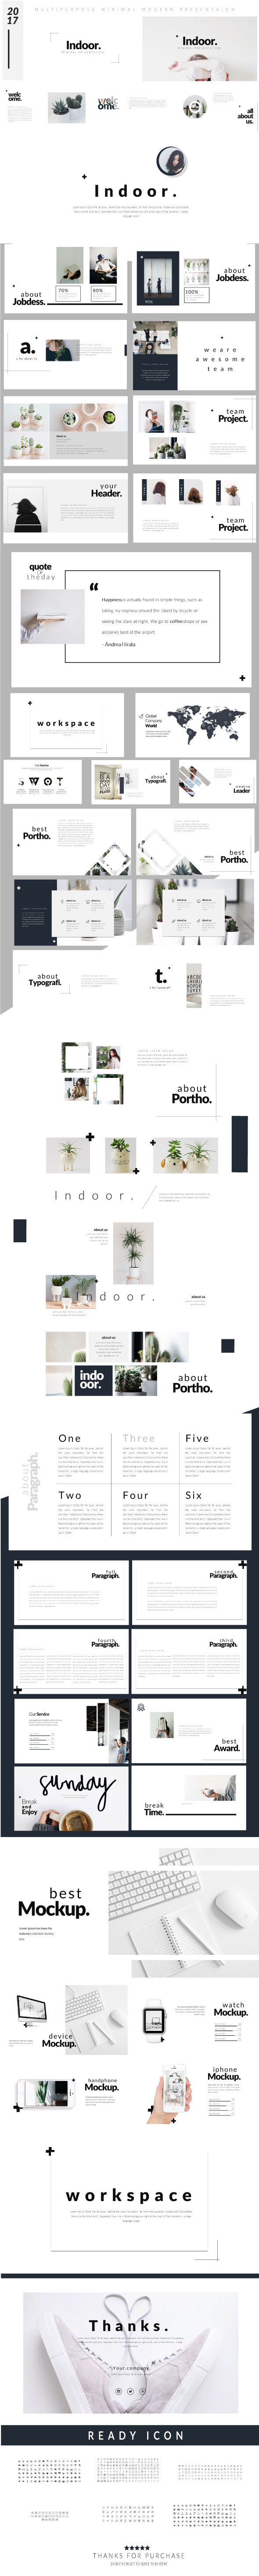 Indoor - Modern Google Slide Template - Google Slides Presentation Templates